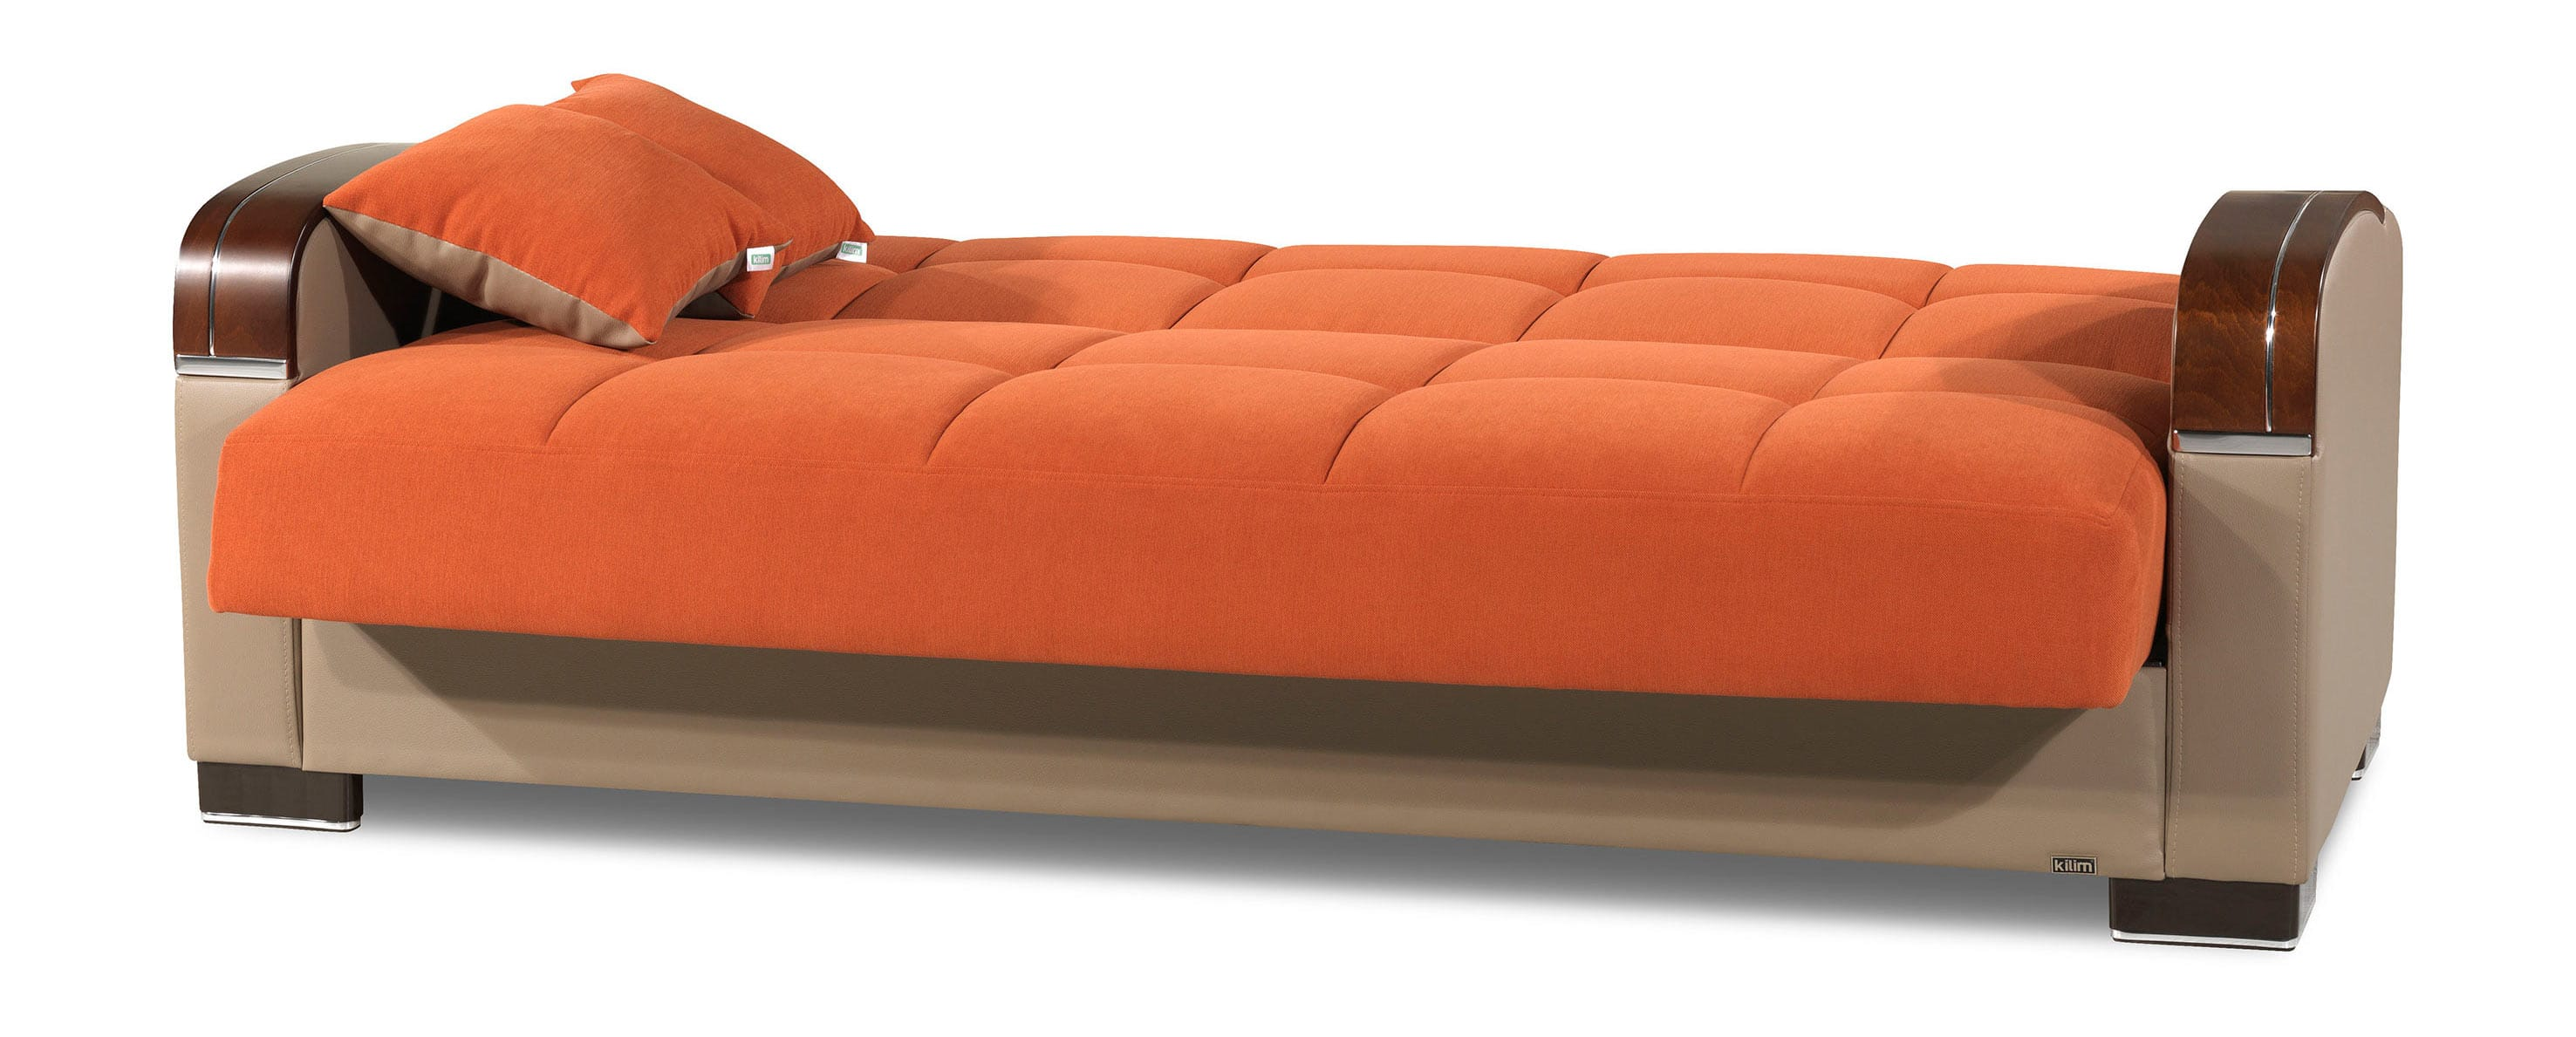 Mobimax Orange Convertible Sofa Bed By Casamode